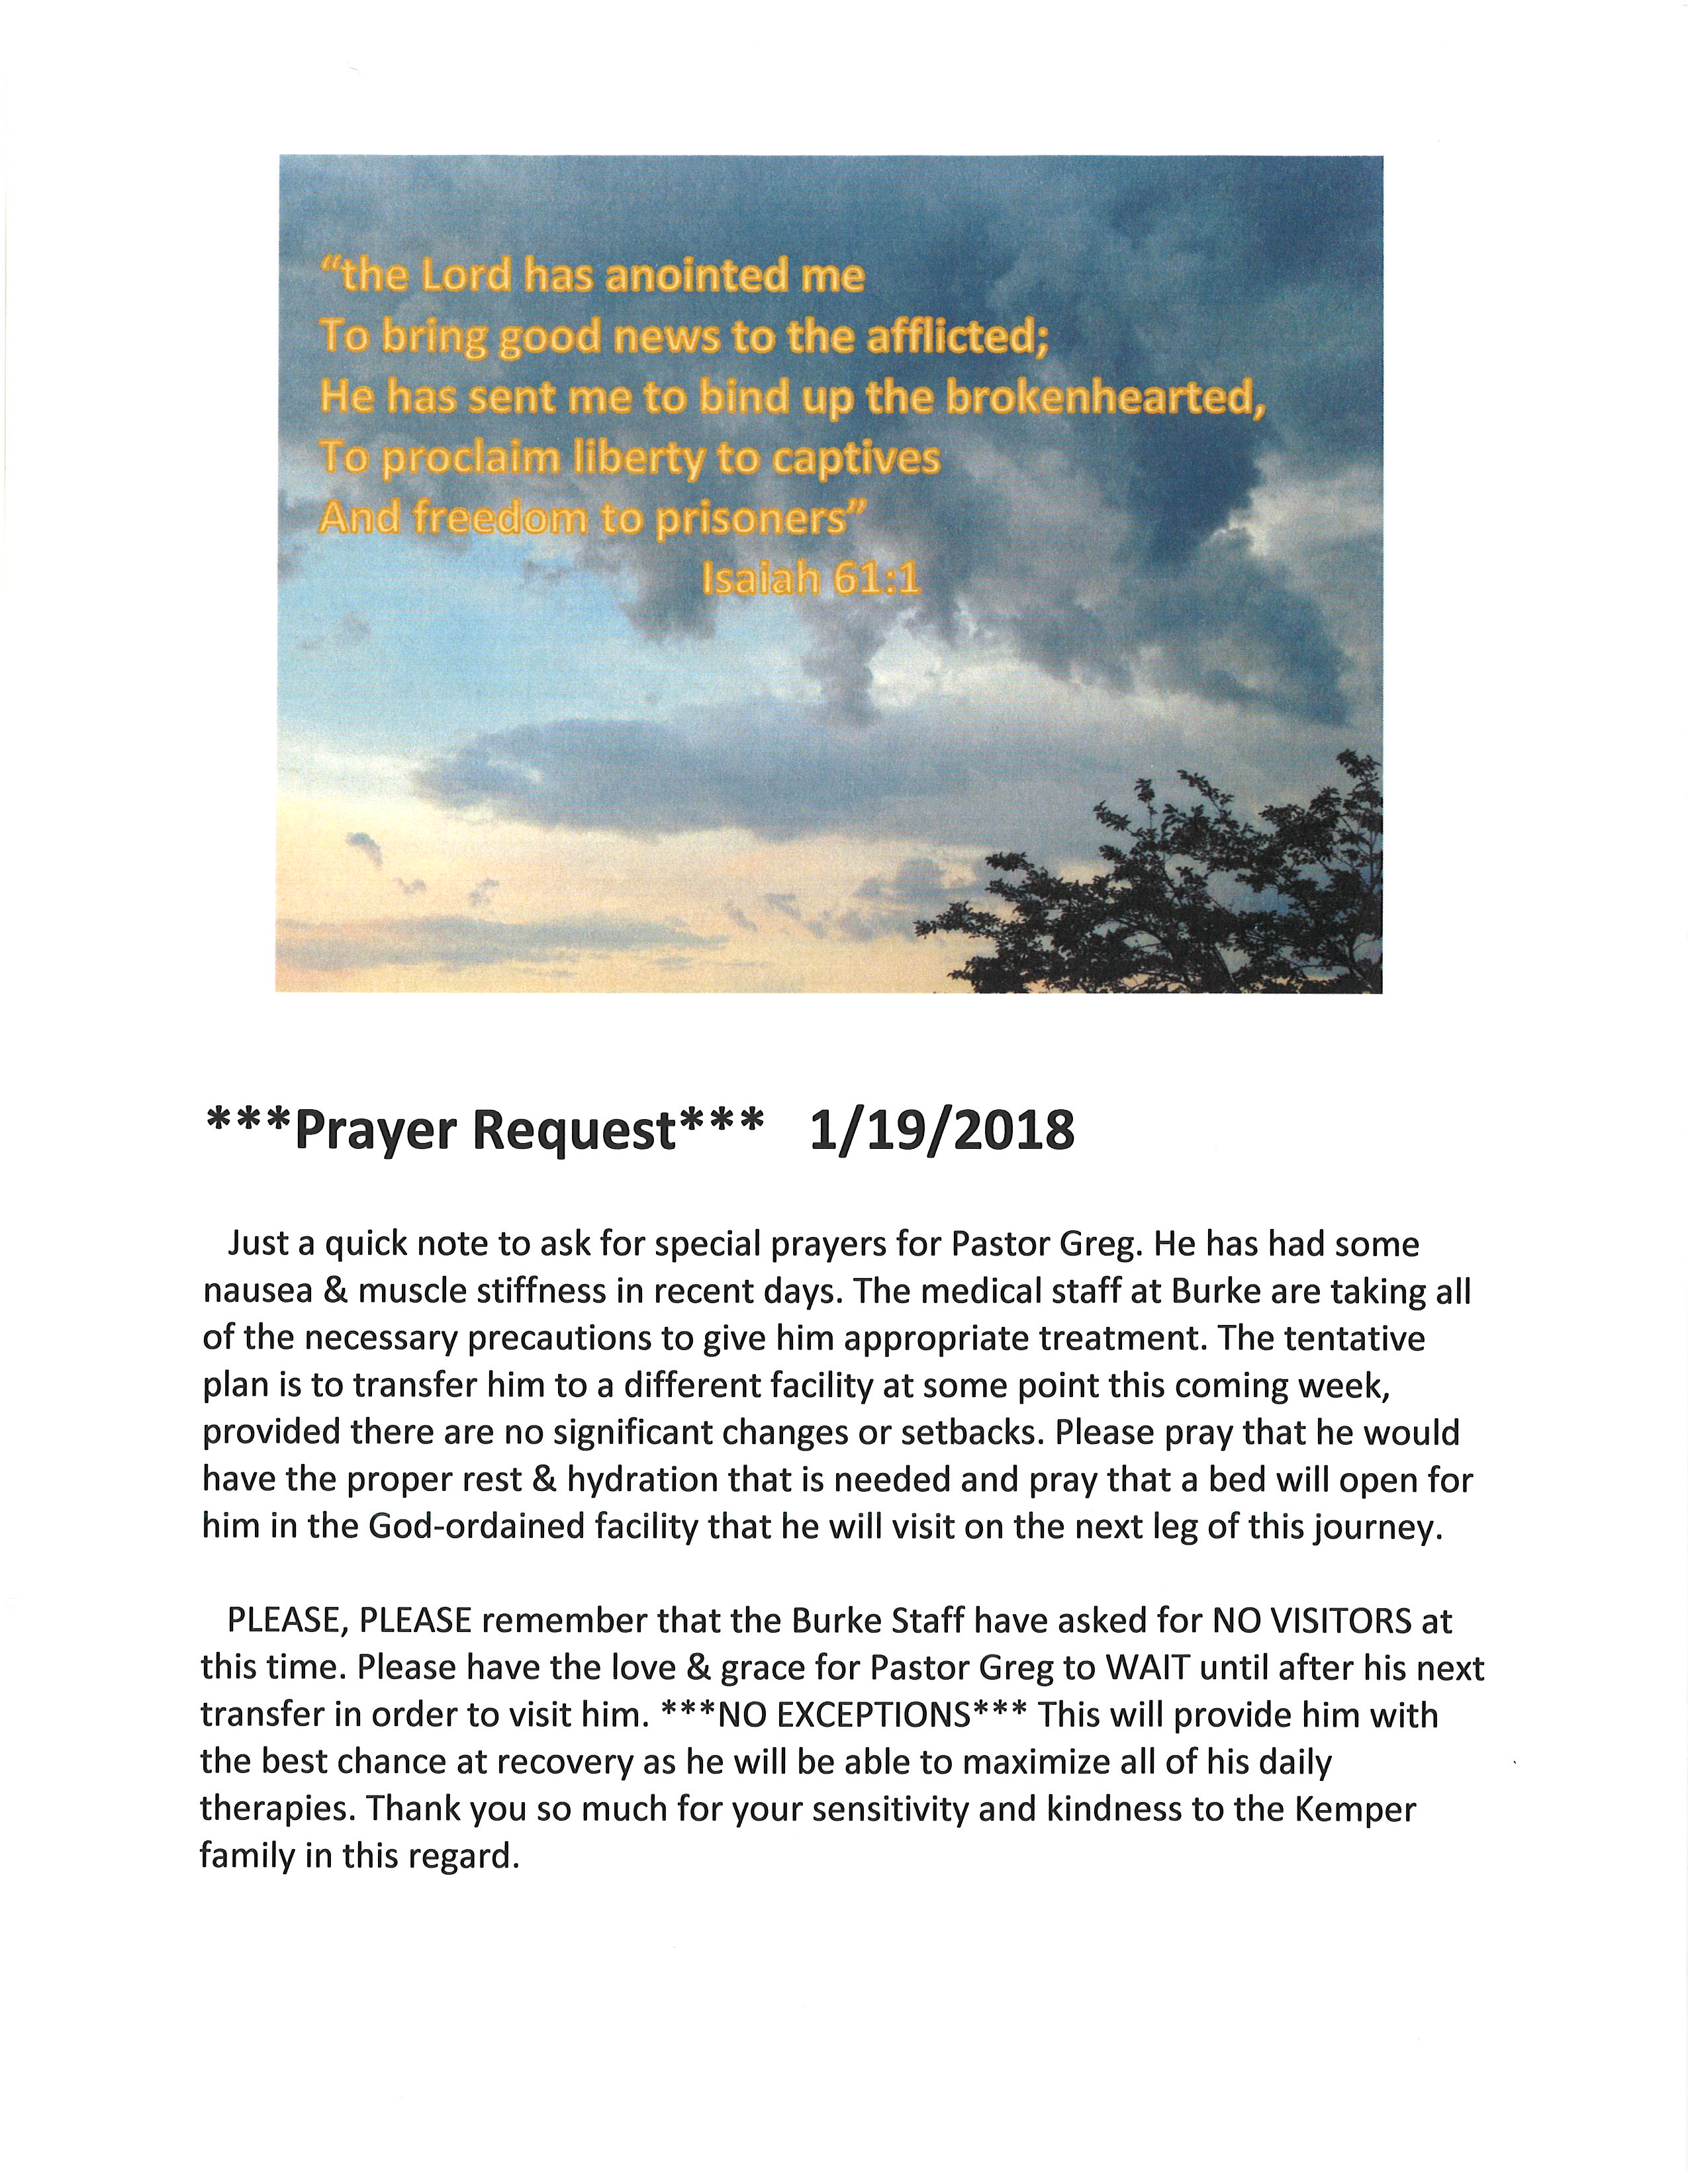 Pastor Greg Update, Jan 19, 2018